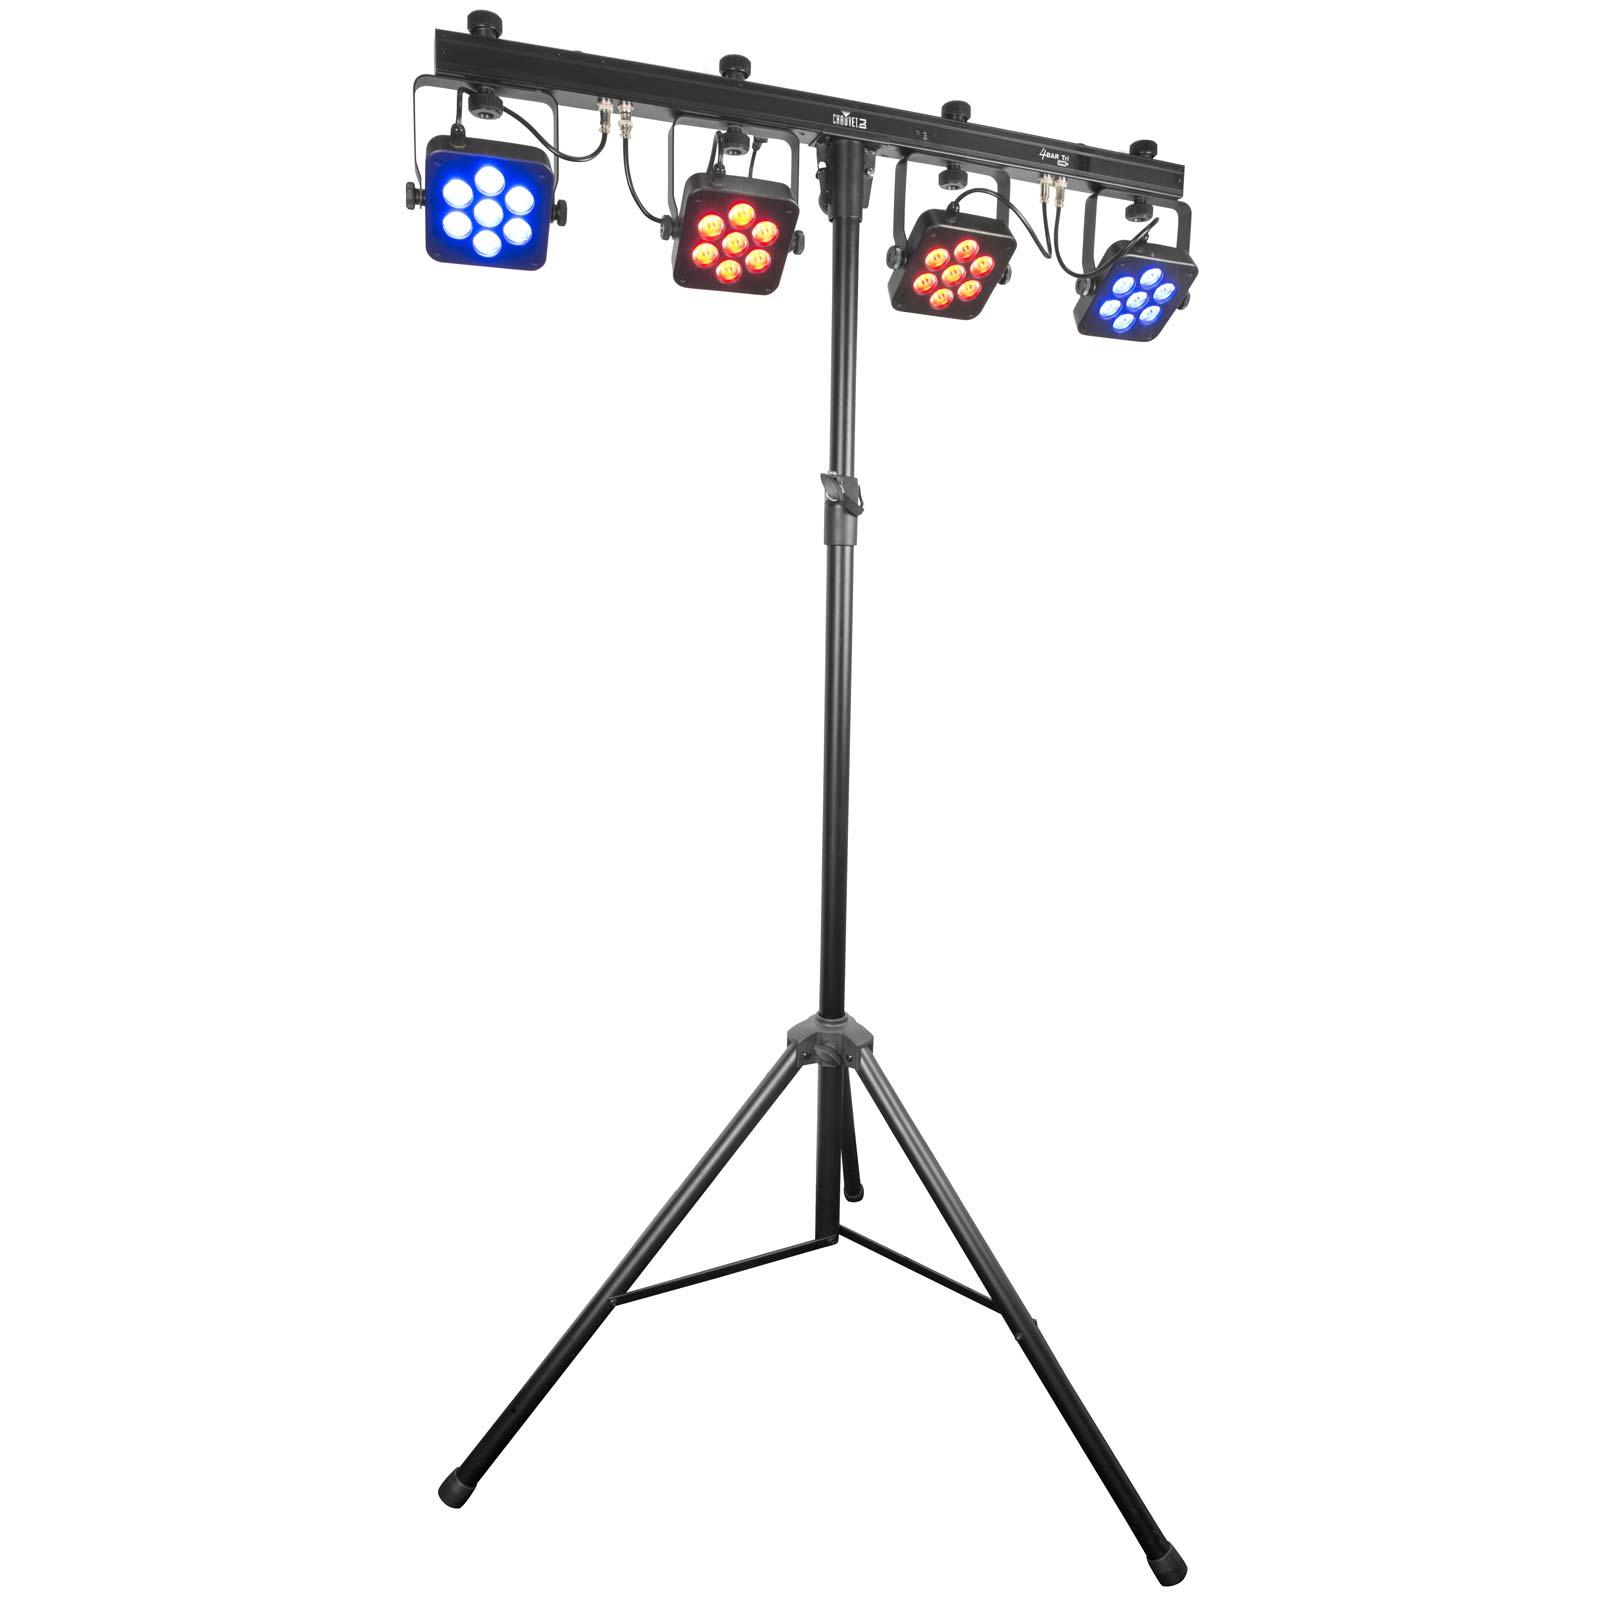 chauvet 4 bar tri usb manual